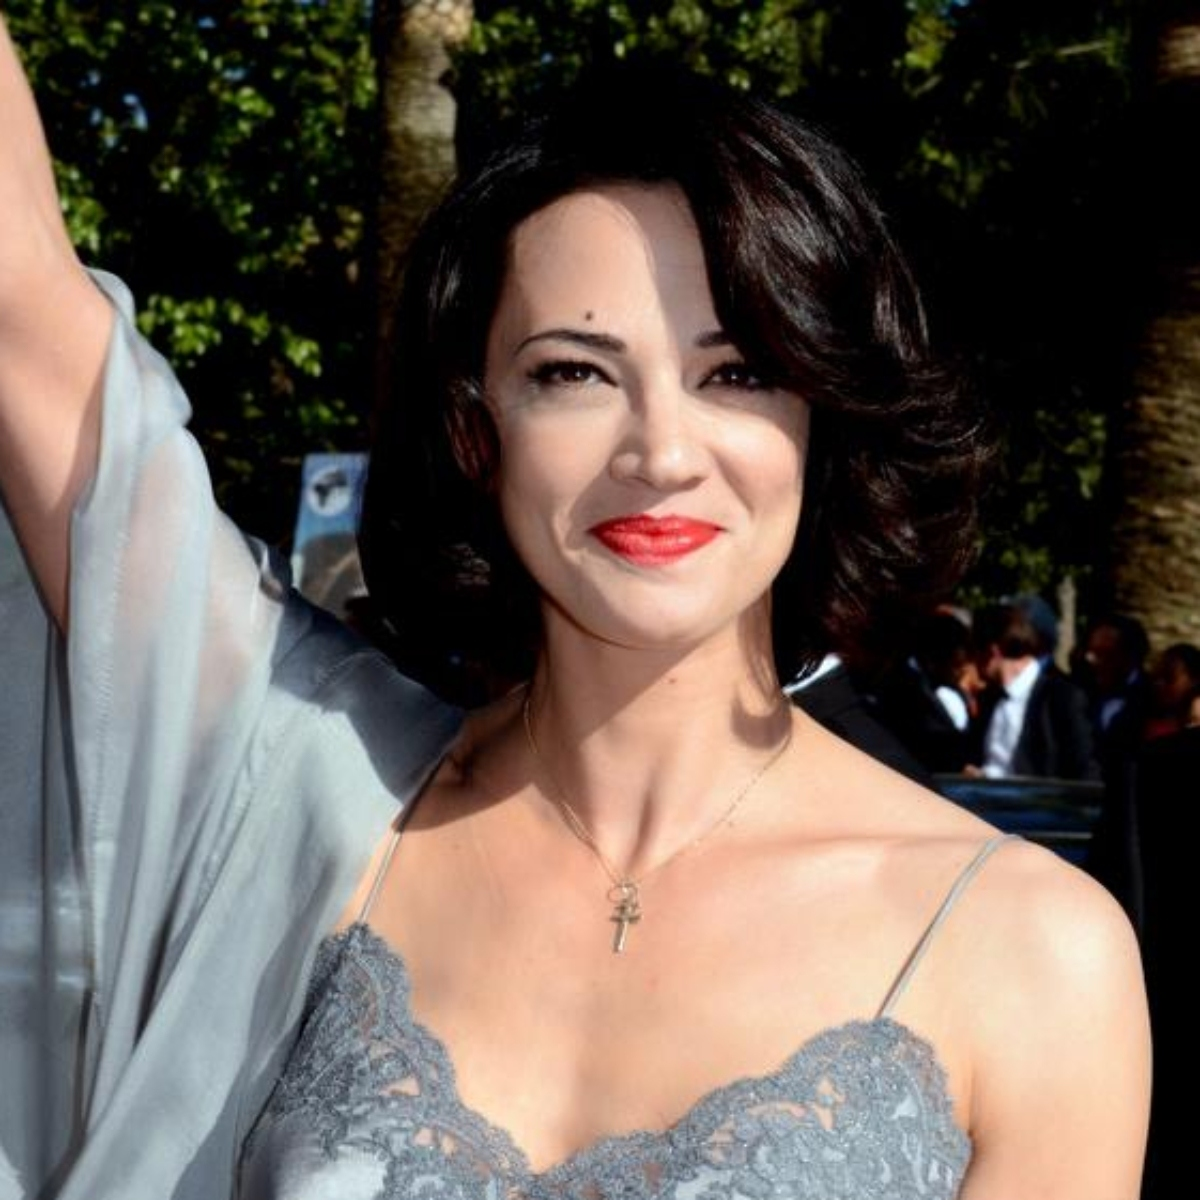 Photo of actress Asia Argento at Cannes in a dress with spaghetti straps.